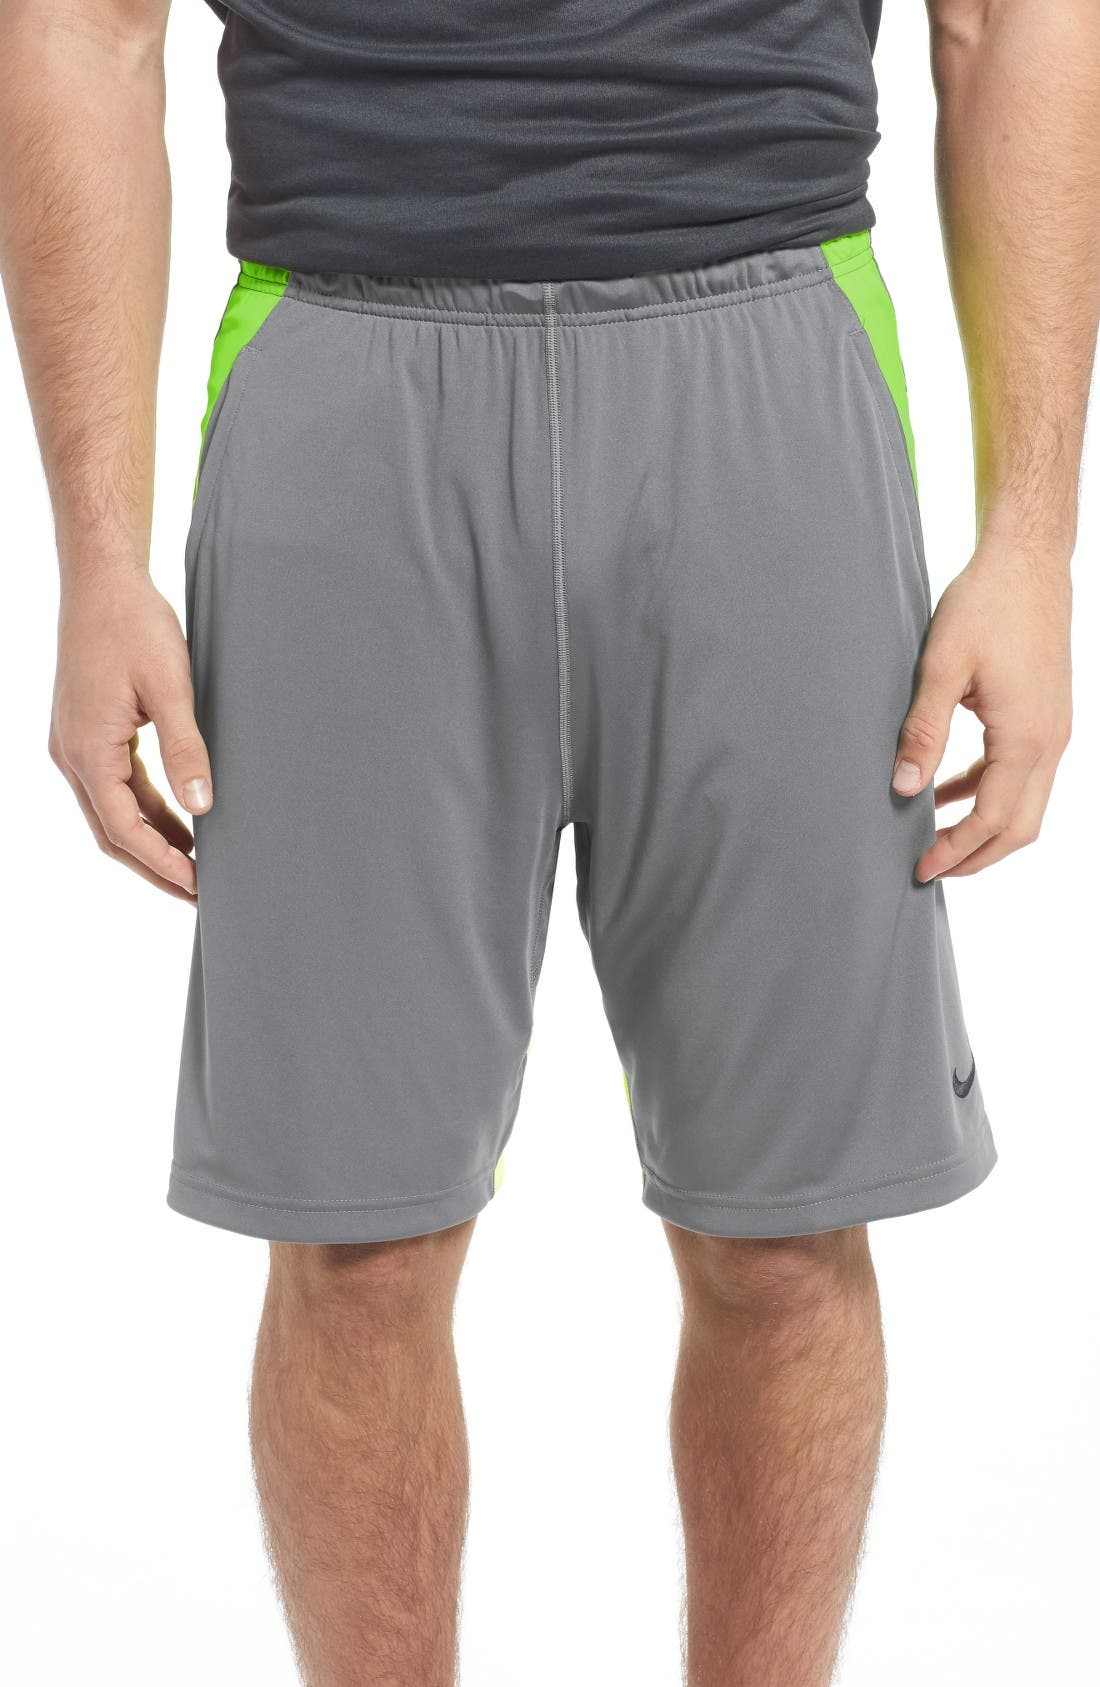 'Fly' Dri-FIT Training Shorts,                             Main thumbnail 16, color,